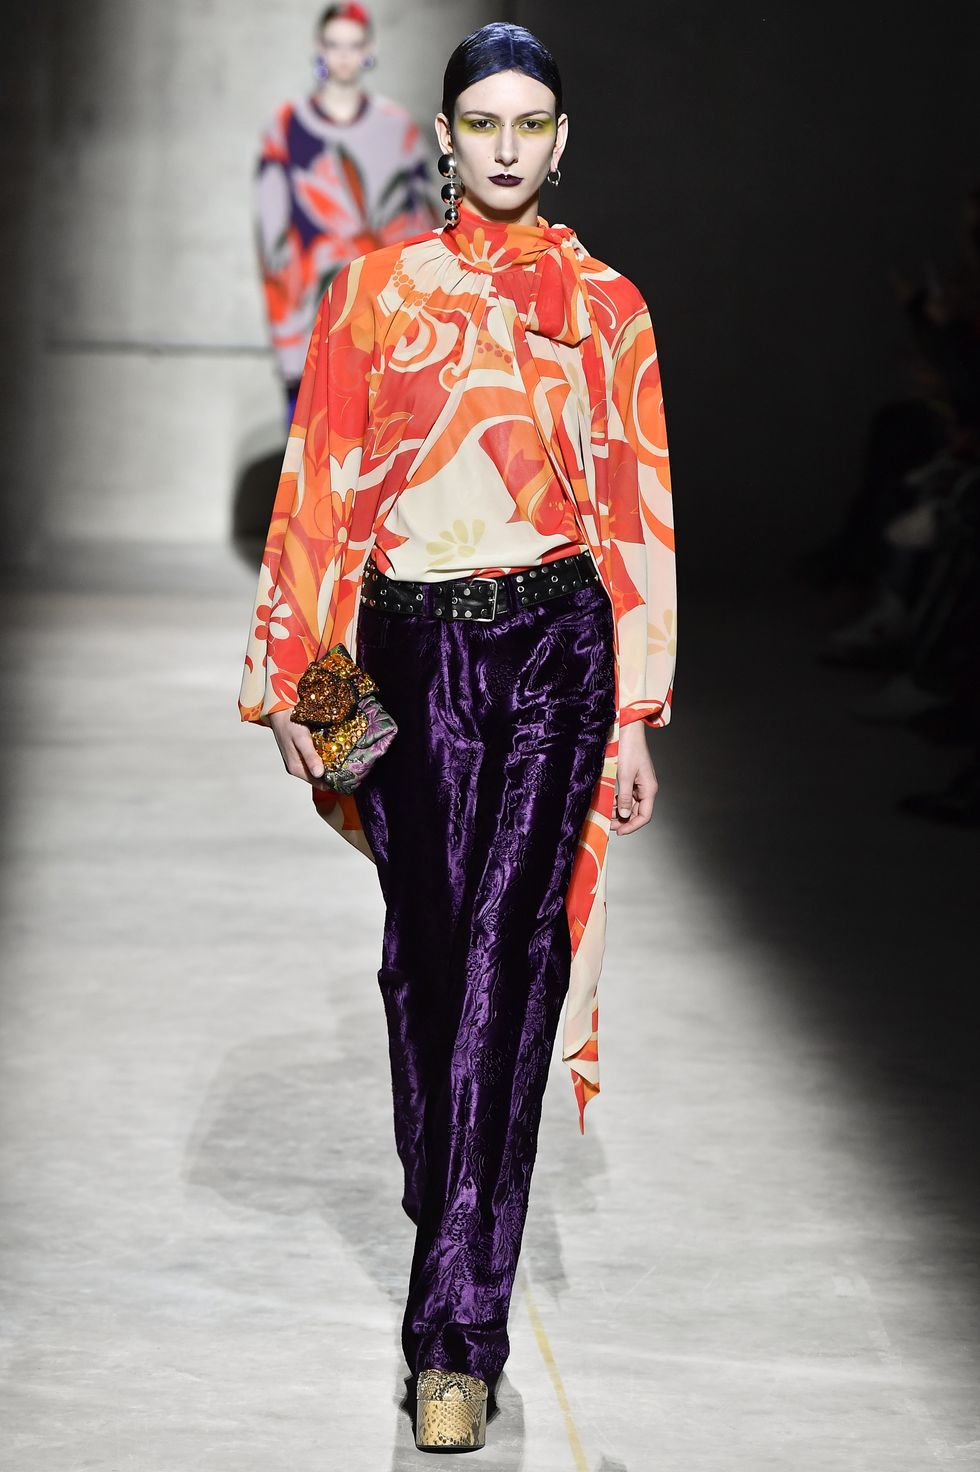 Be Amazed By Paris Fashion Week 2020's Runway Looks paris fashion week 2020 Be Amazed By Paris Fashion Week 2020's Runway Looks model walks the runway during the dries van noten ready to news photo 1582796227